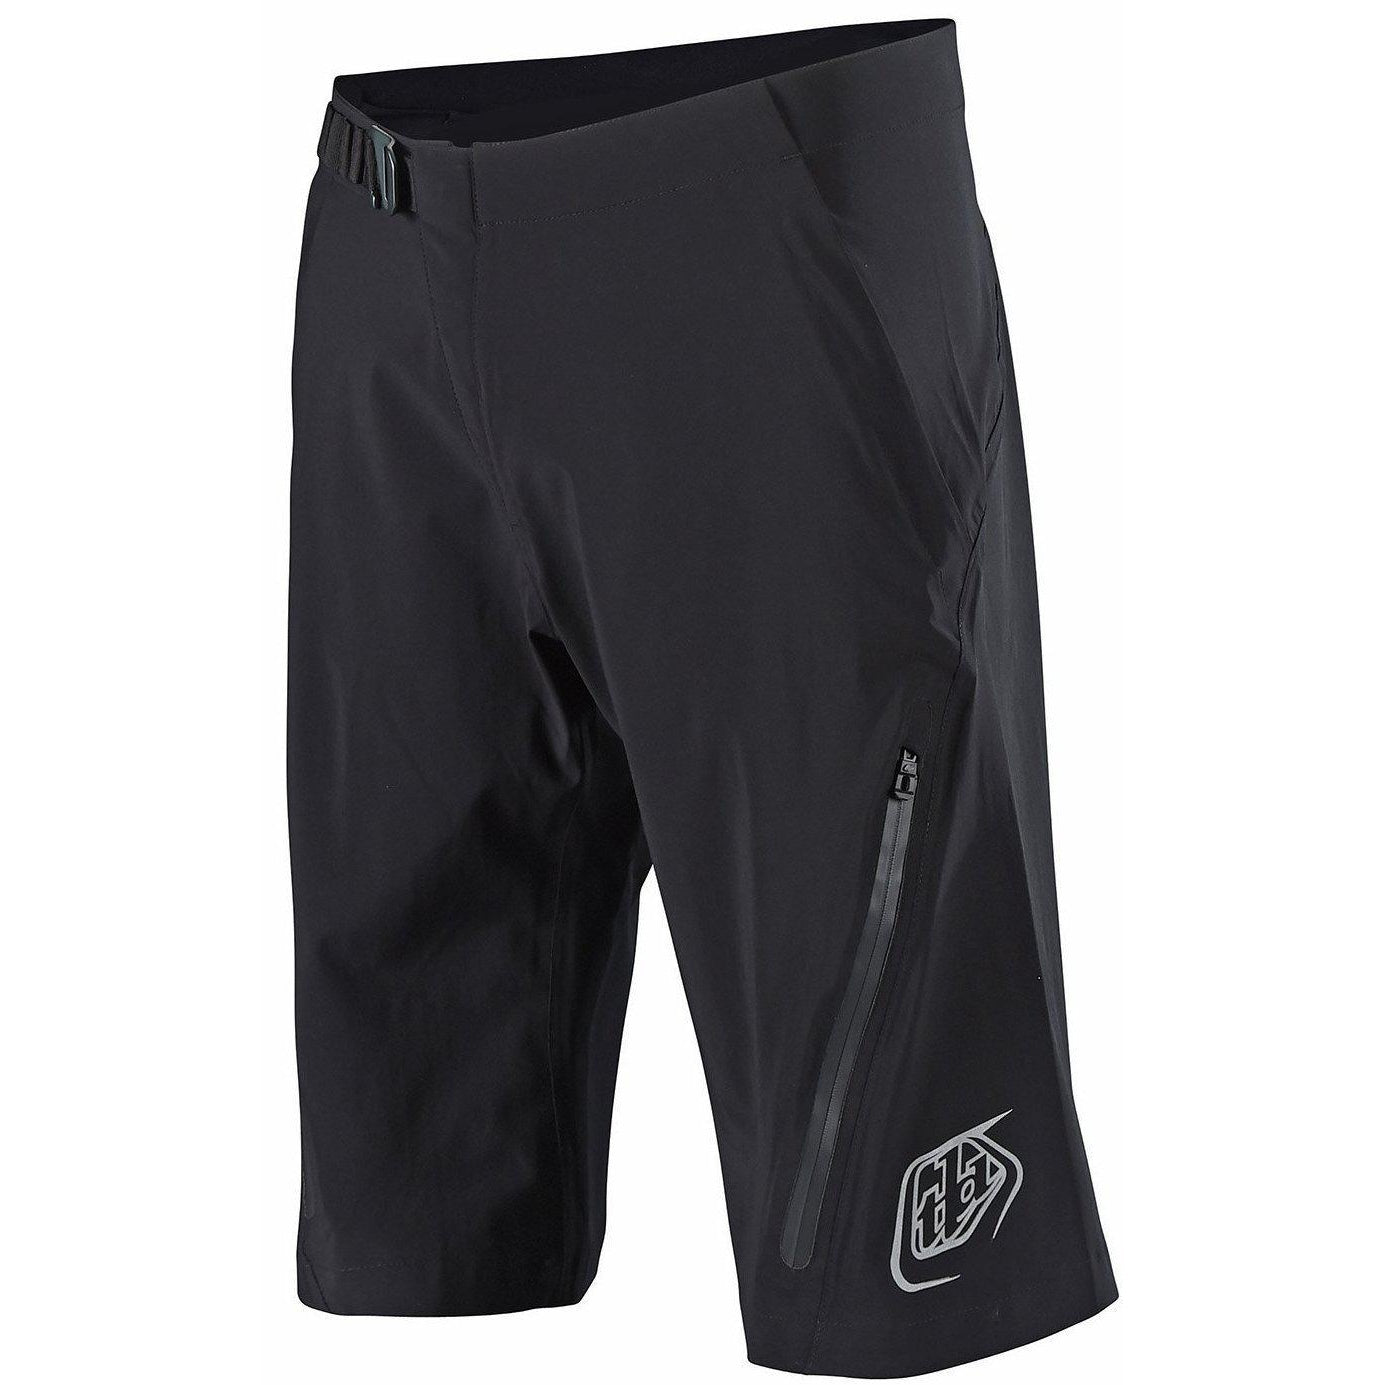 Shorts - Troy Lee Designs Resist Short